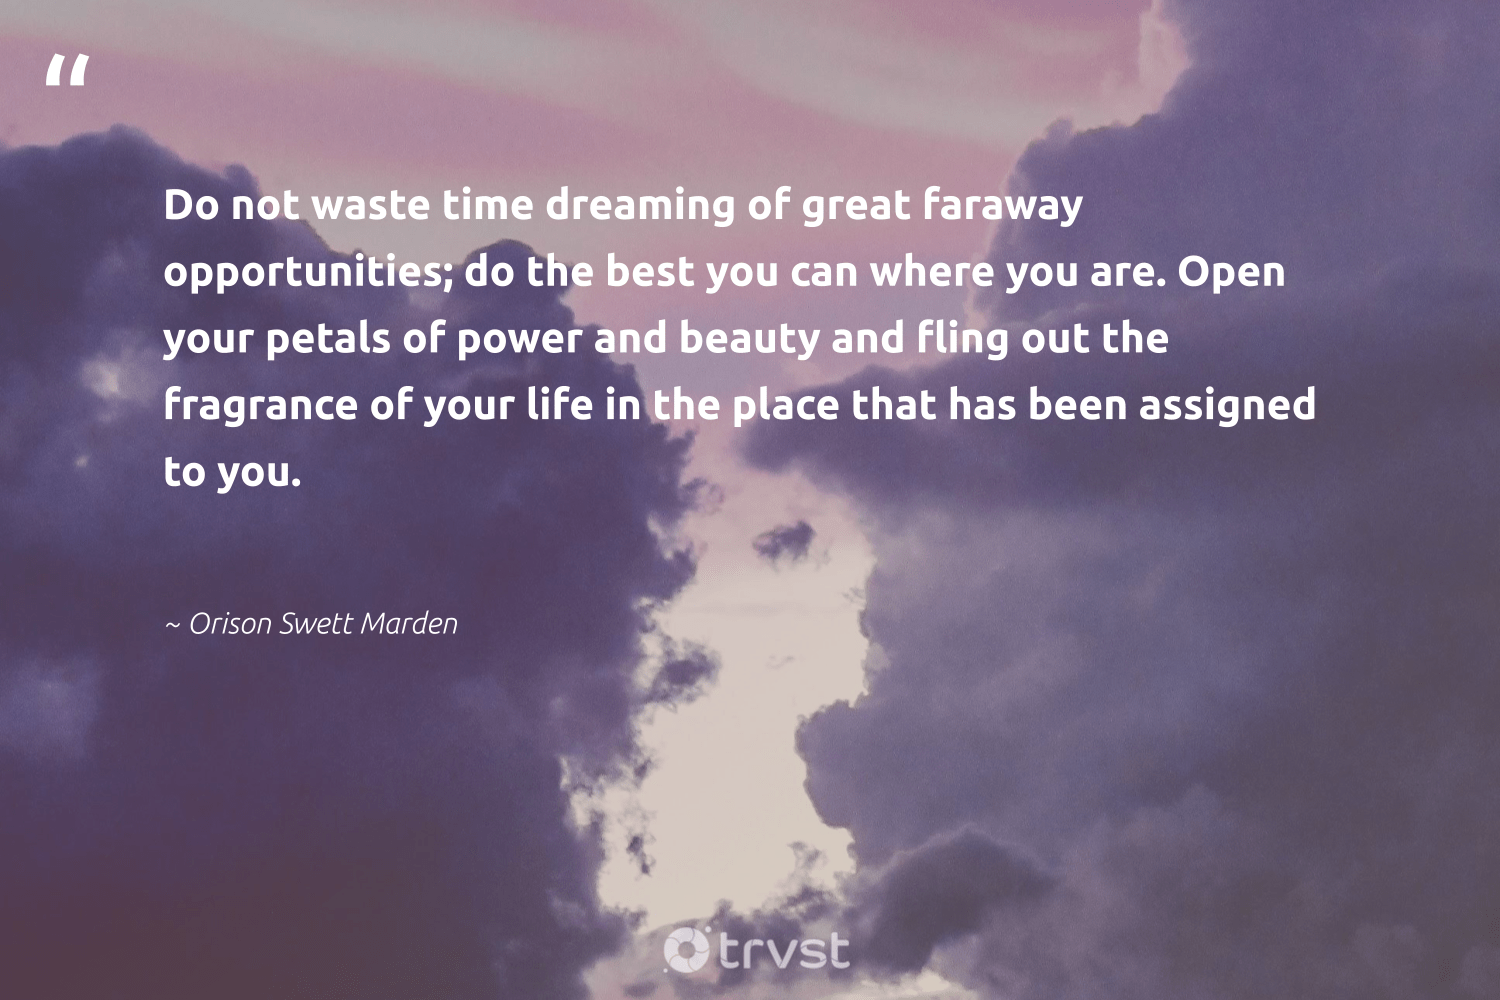 """""""Do not waste time dreaming of great faraway opportunities; do the best you can where you are. Open your petals of power and beauty and fling out the fragrance of your life in the place that has been assigned to you.""""  - Orison Swett Marden #trvst #quotes #waste #beauty #ethicalbusiness #socialchange #weareallone #thinkgreen #dogood #beinspired #betterplanet #planetearthfirst"""